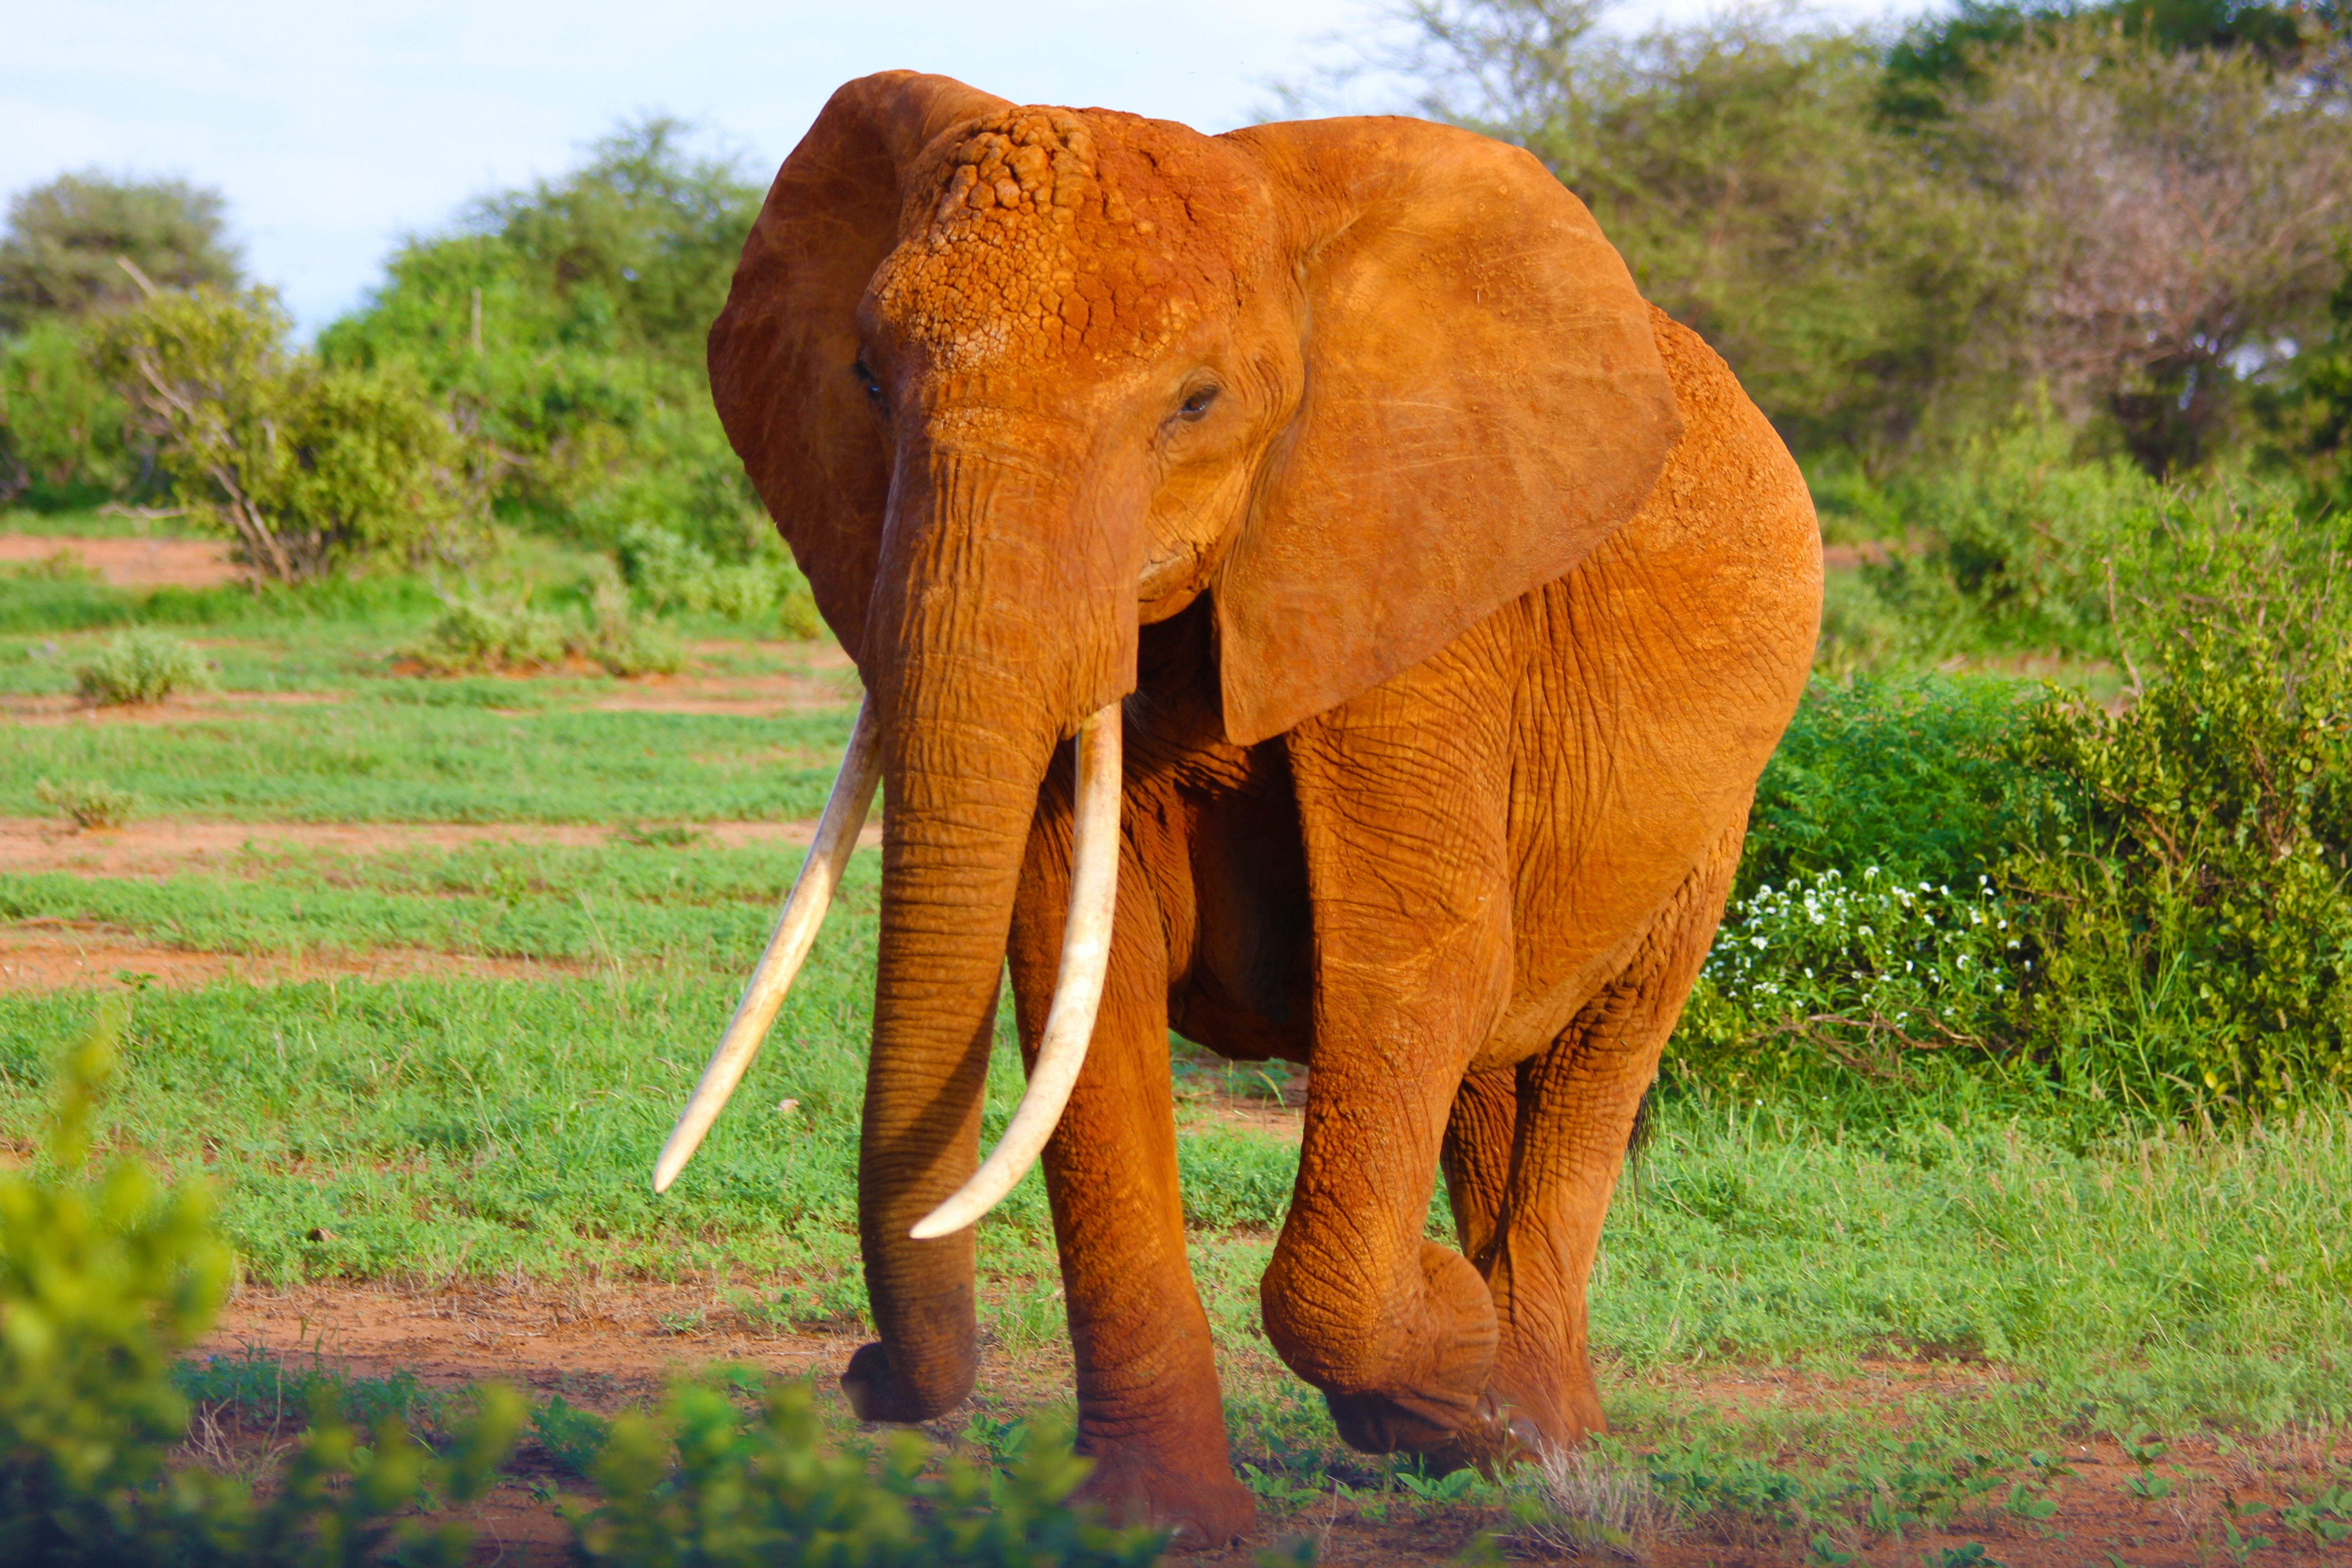 A long-tusked elephant marching on a sunlit grassy plain